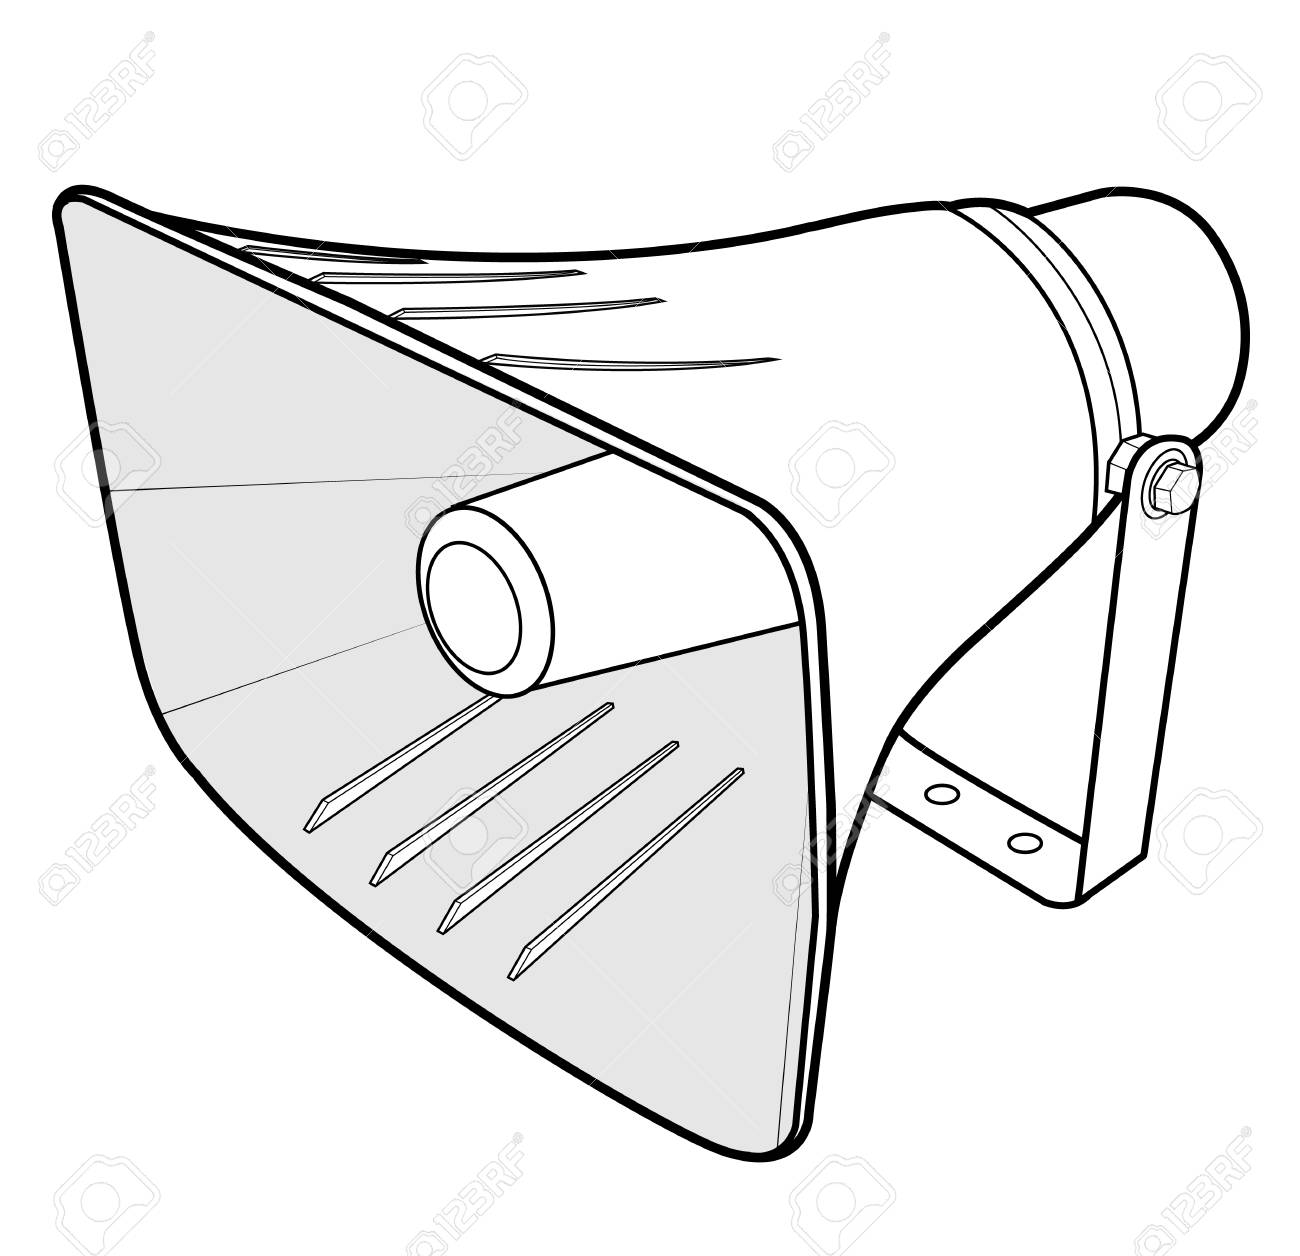 photo relating to Printable Megaphone Template named Template for megaphone